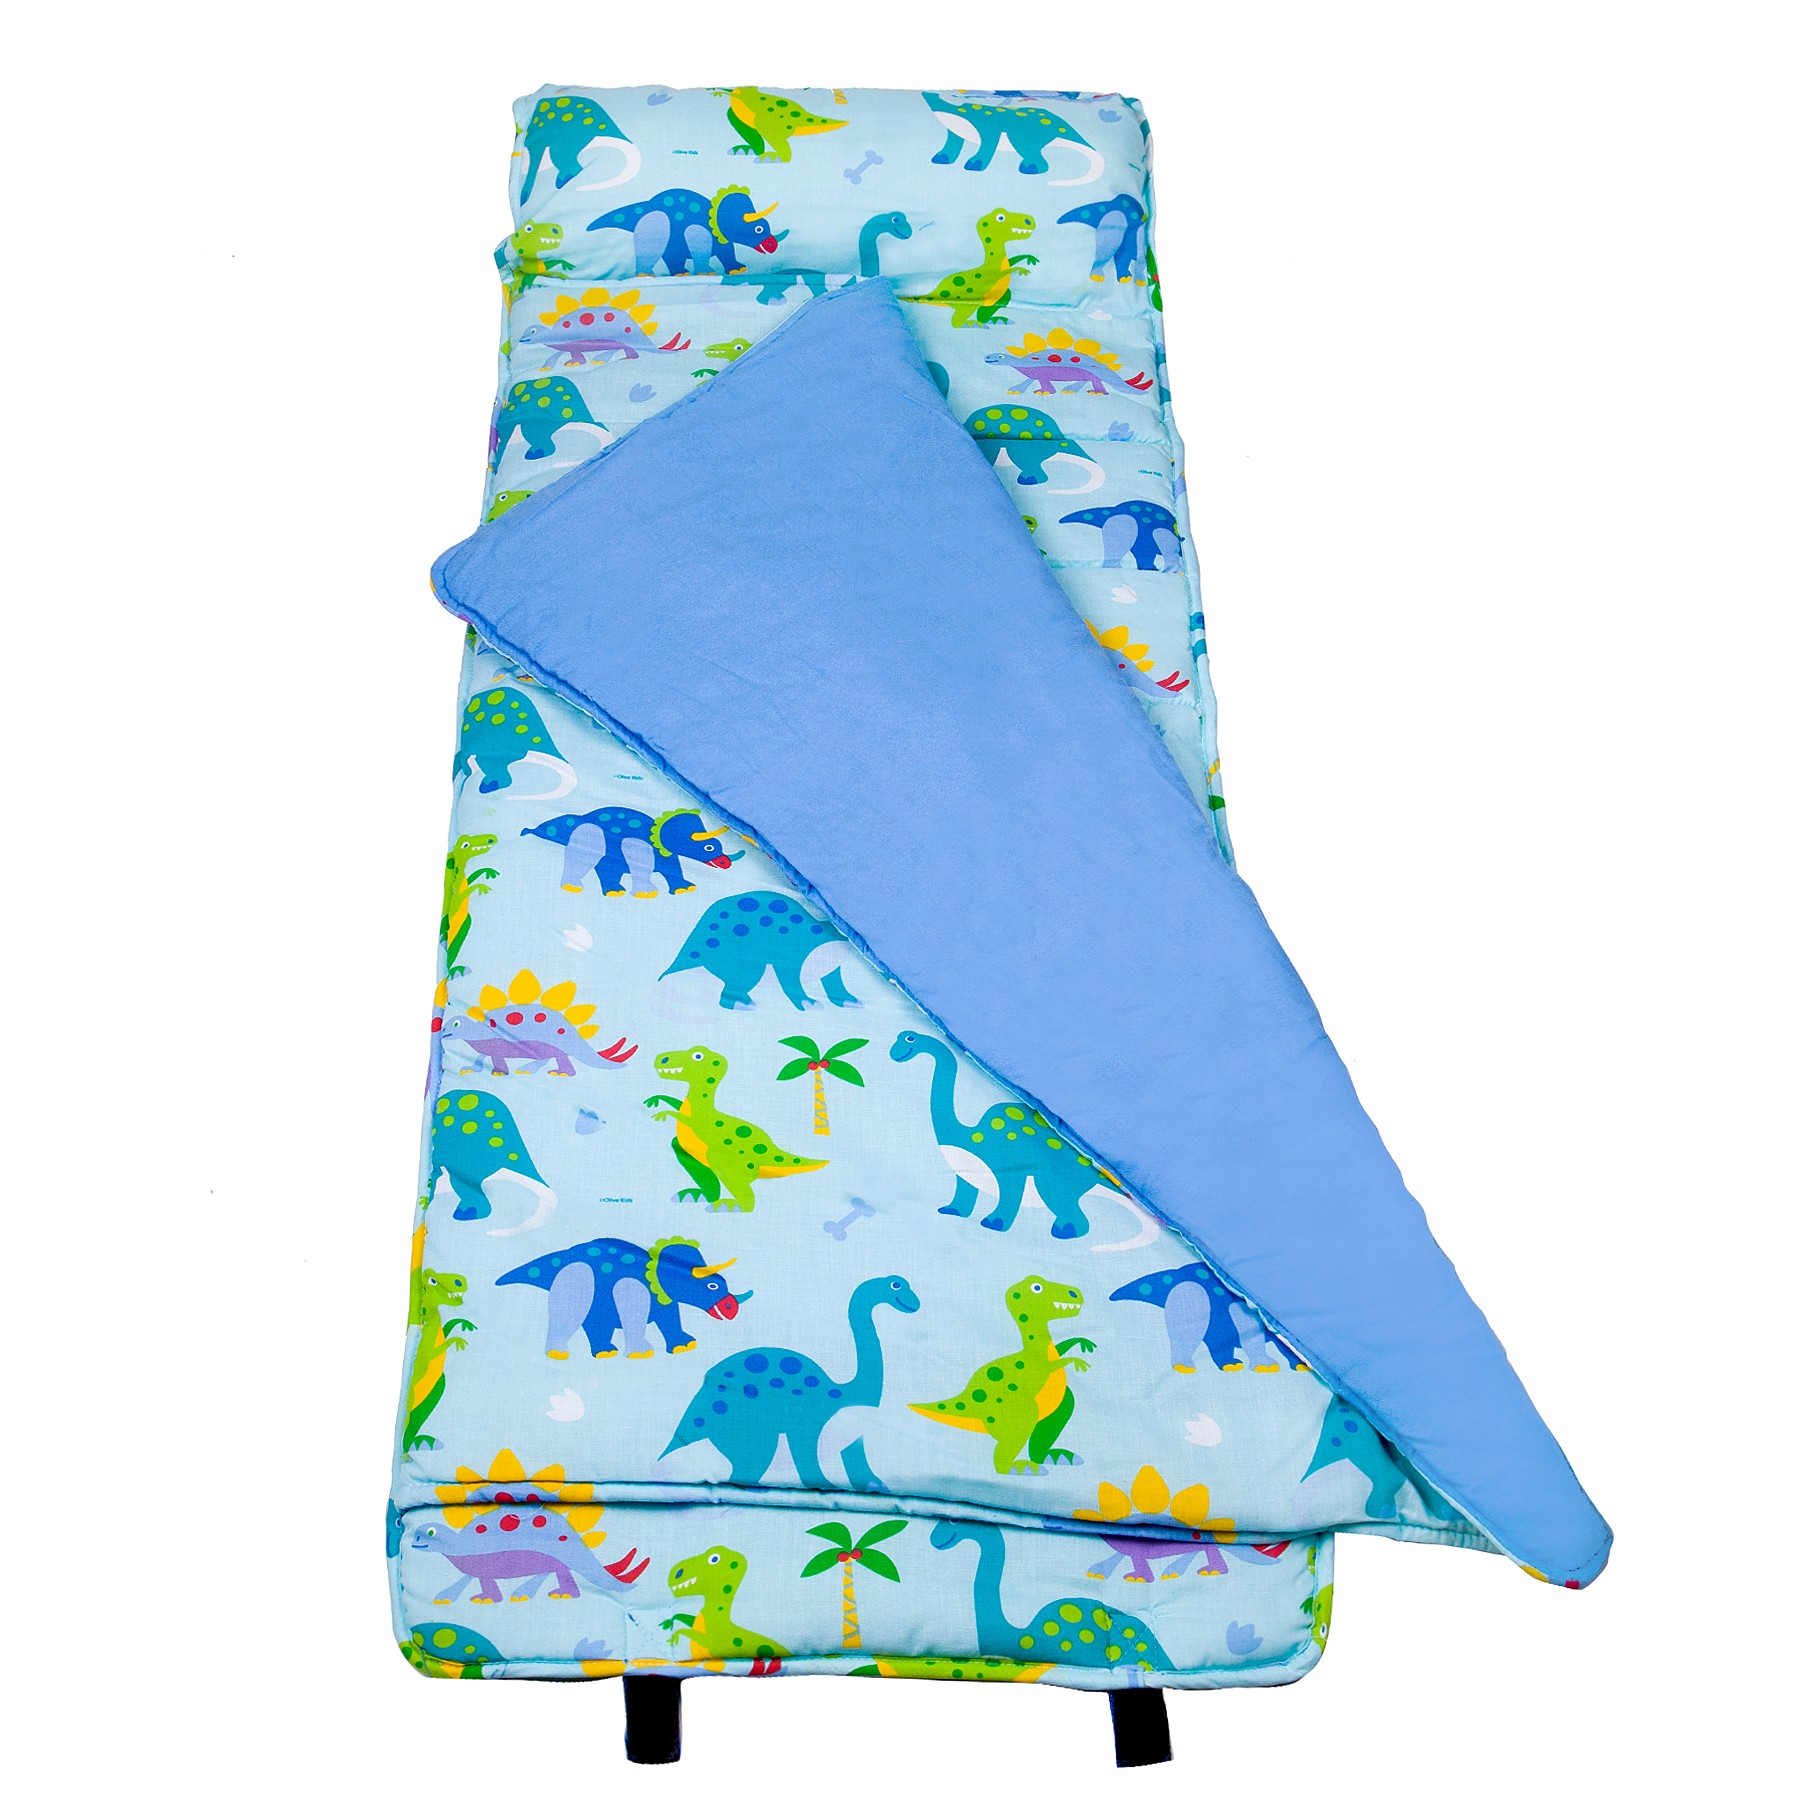 Dinosaur Land Olive Kids Bedding Nap Mat Kids Bedding